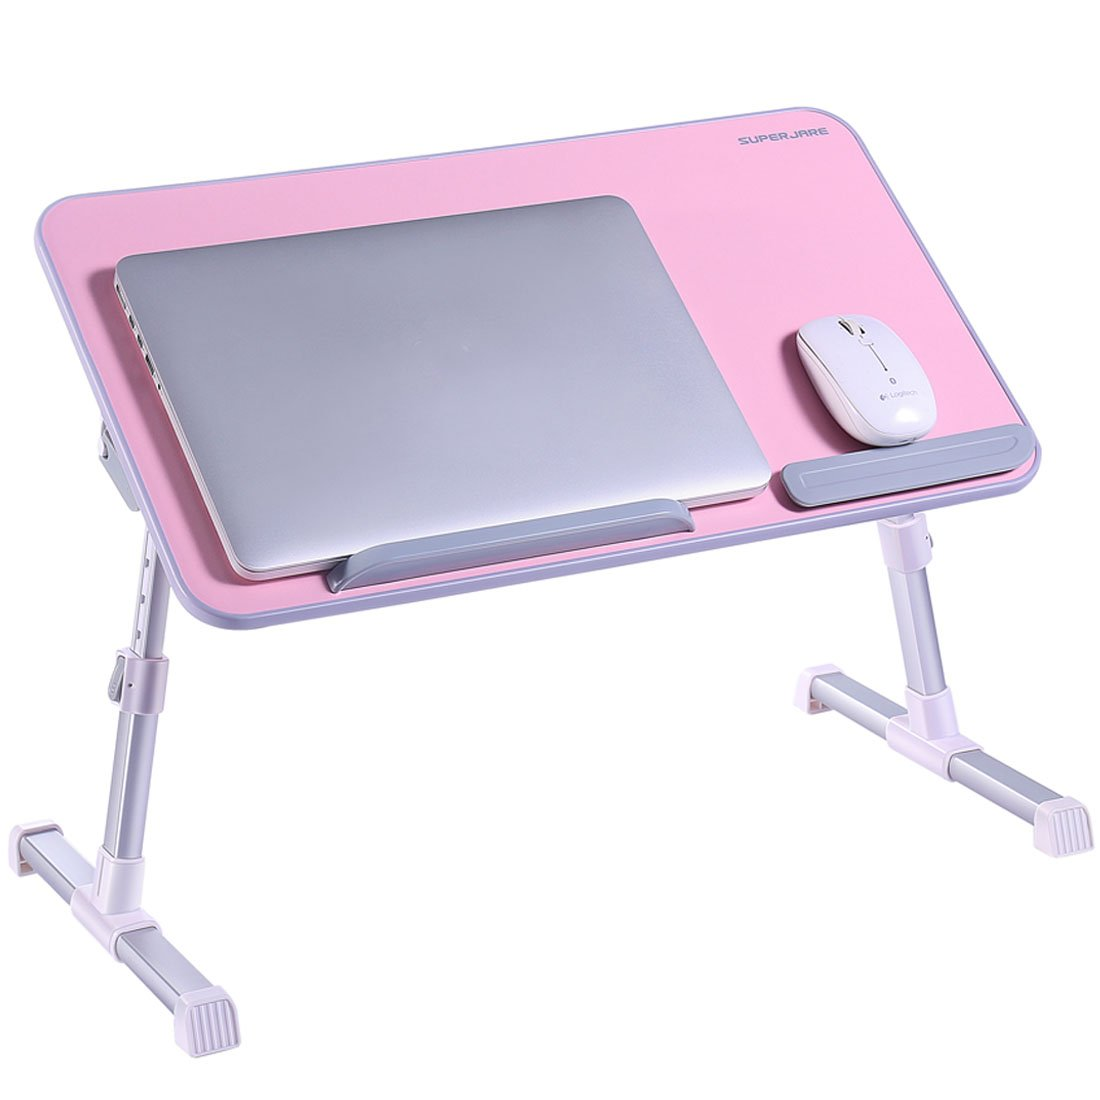 Portable Laptop Table by Superjare | Foldable & Durable Design Stand Desk | Adjustable Angle & Height for Bed Couch Floor | Notebook Holder | Breakfast Tray - Pink